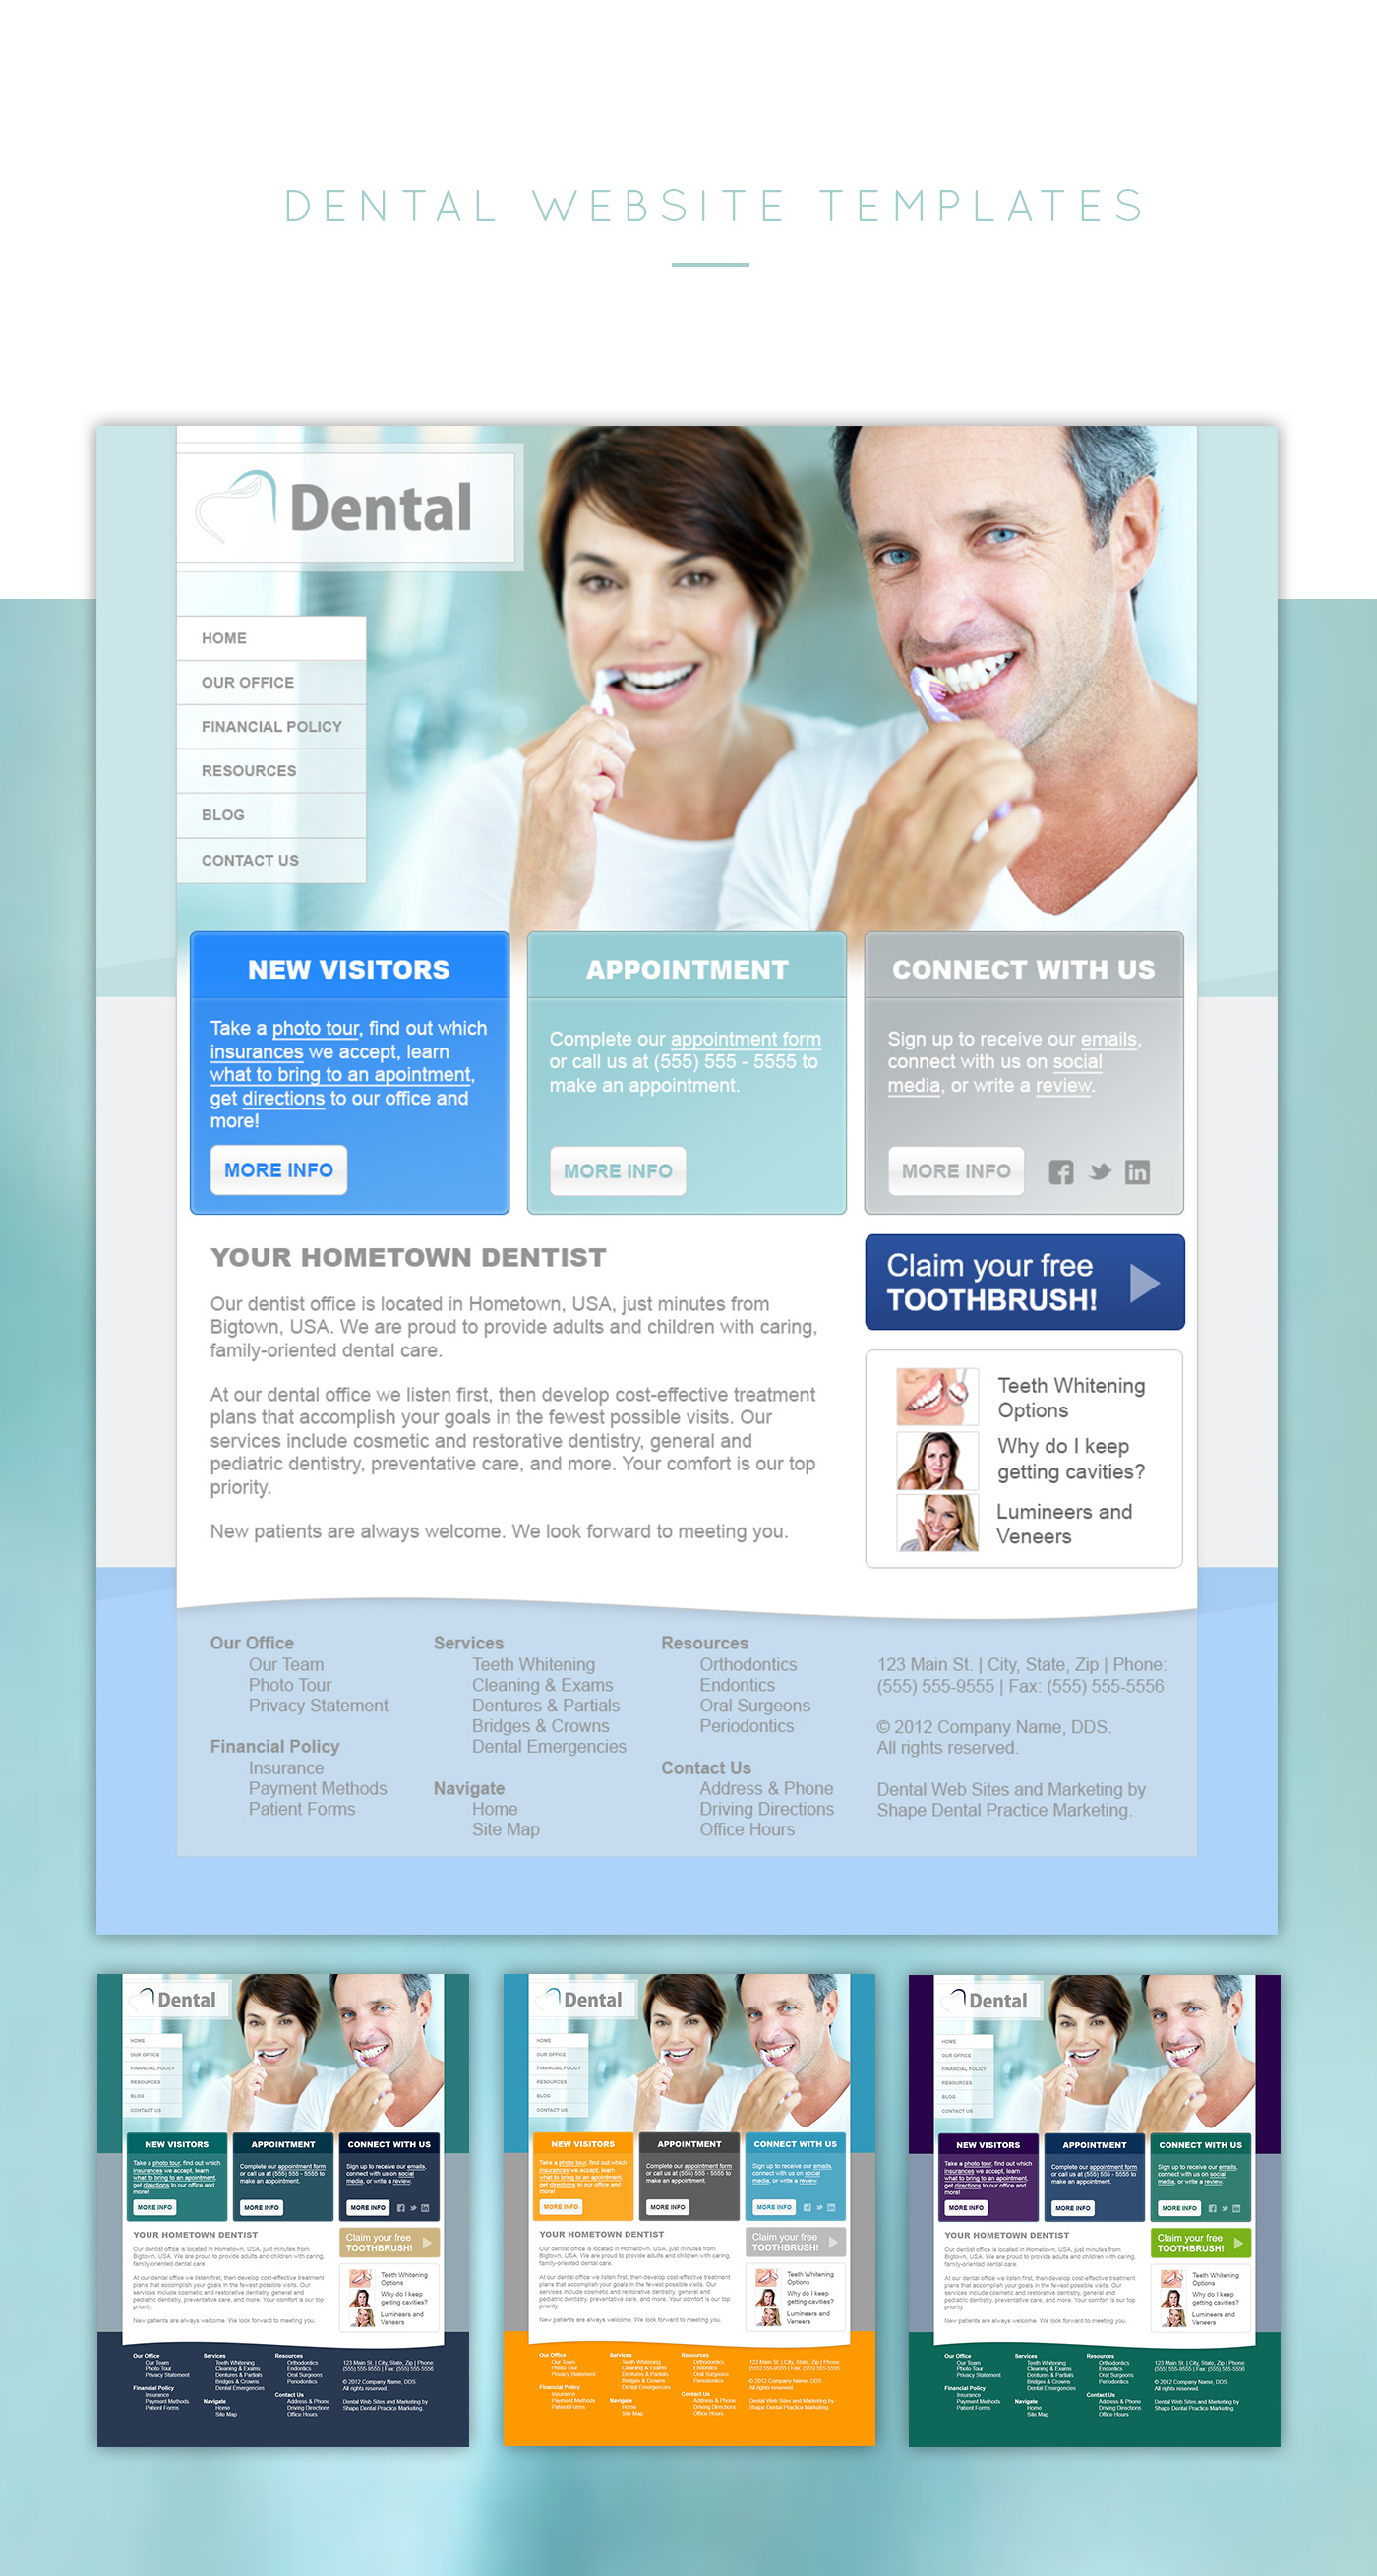 Katie Schmidt Design Portfolio Dental Website Templates Concepts